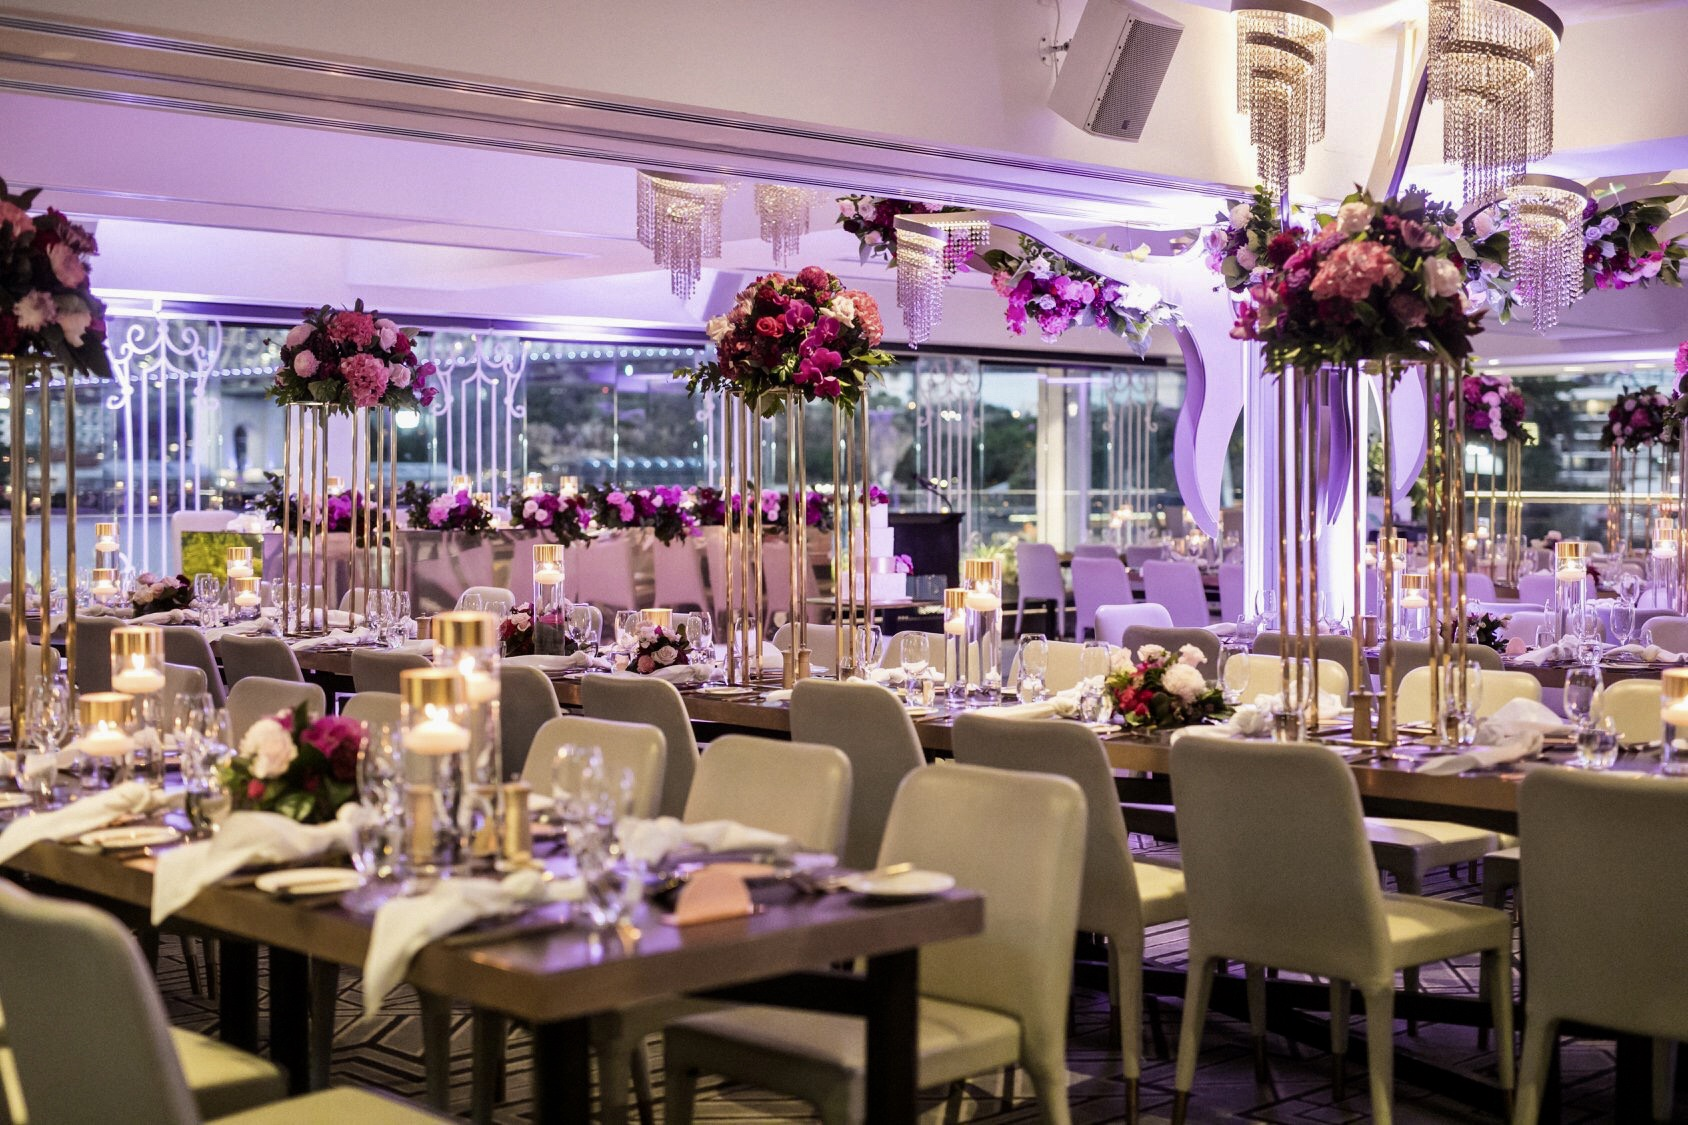 white+white weddings and events the wedding school jenny john black bird private dining full reception room purple deep wedding flowers florals